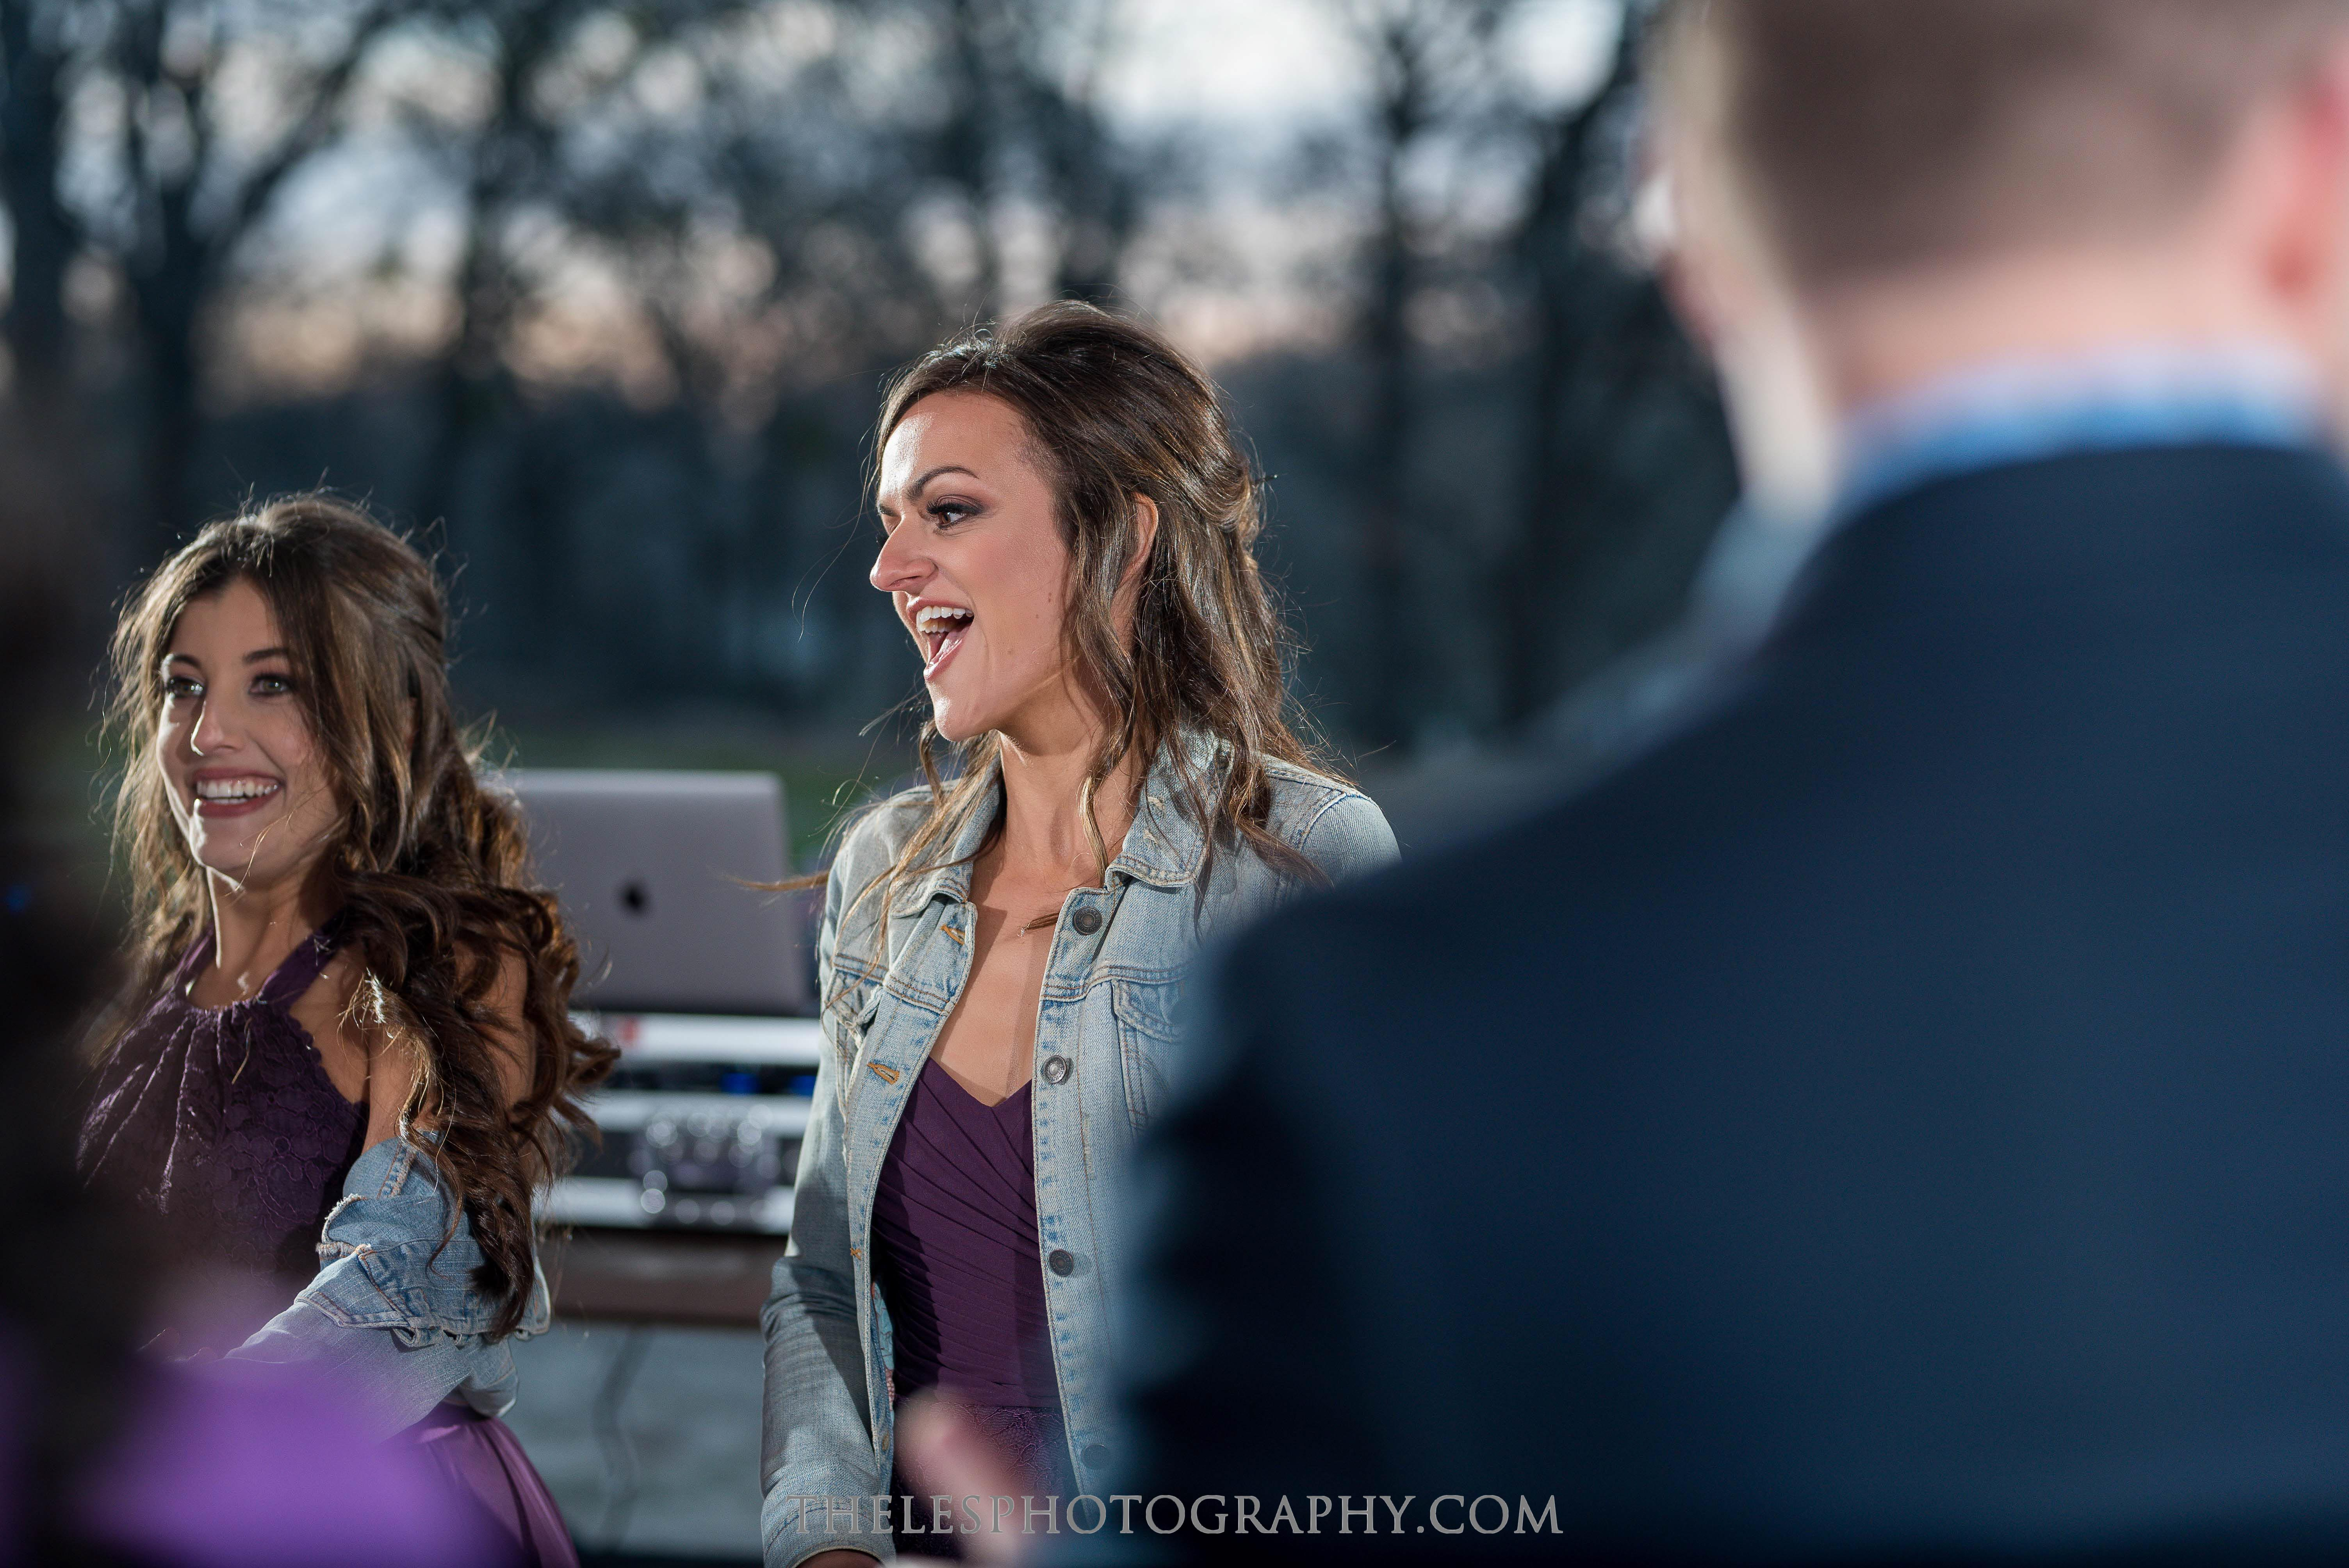 116 Dallas Wedding Photography - Photographer - The Les Photography - Fort Country Memories Wedding